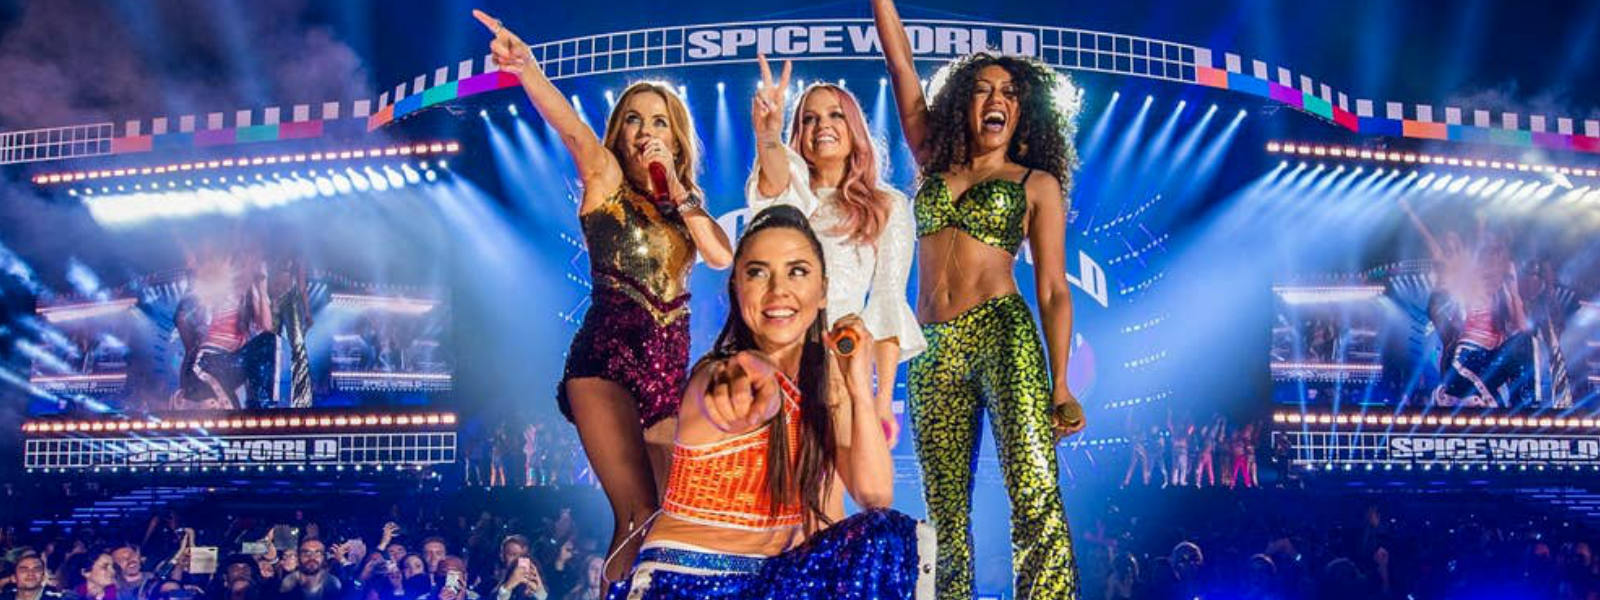 Spice Girls rock London's Wembley Stadium